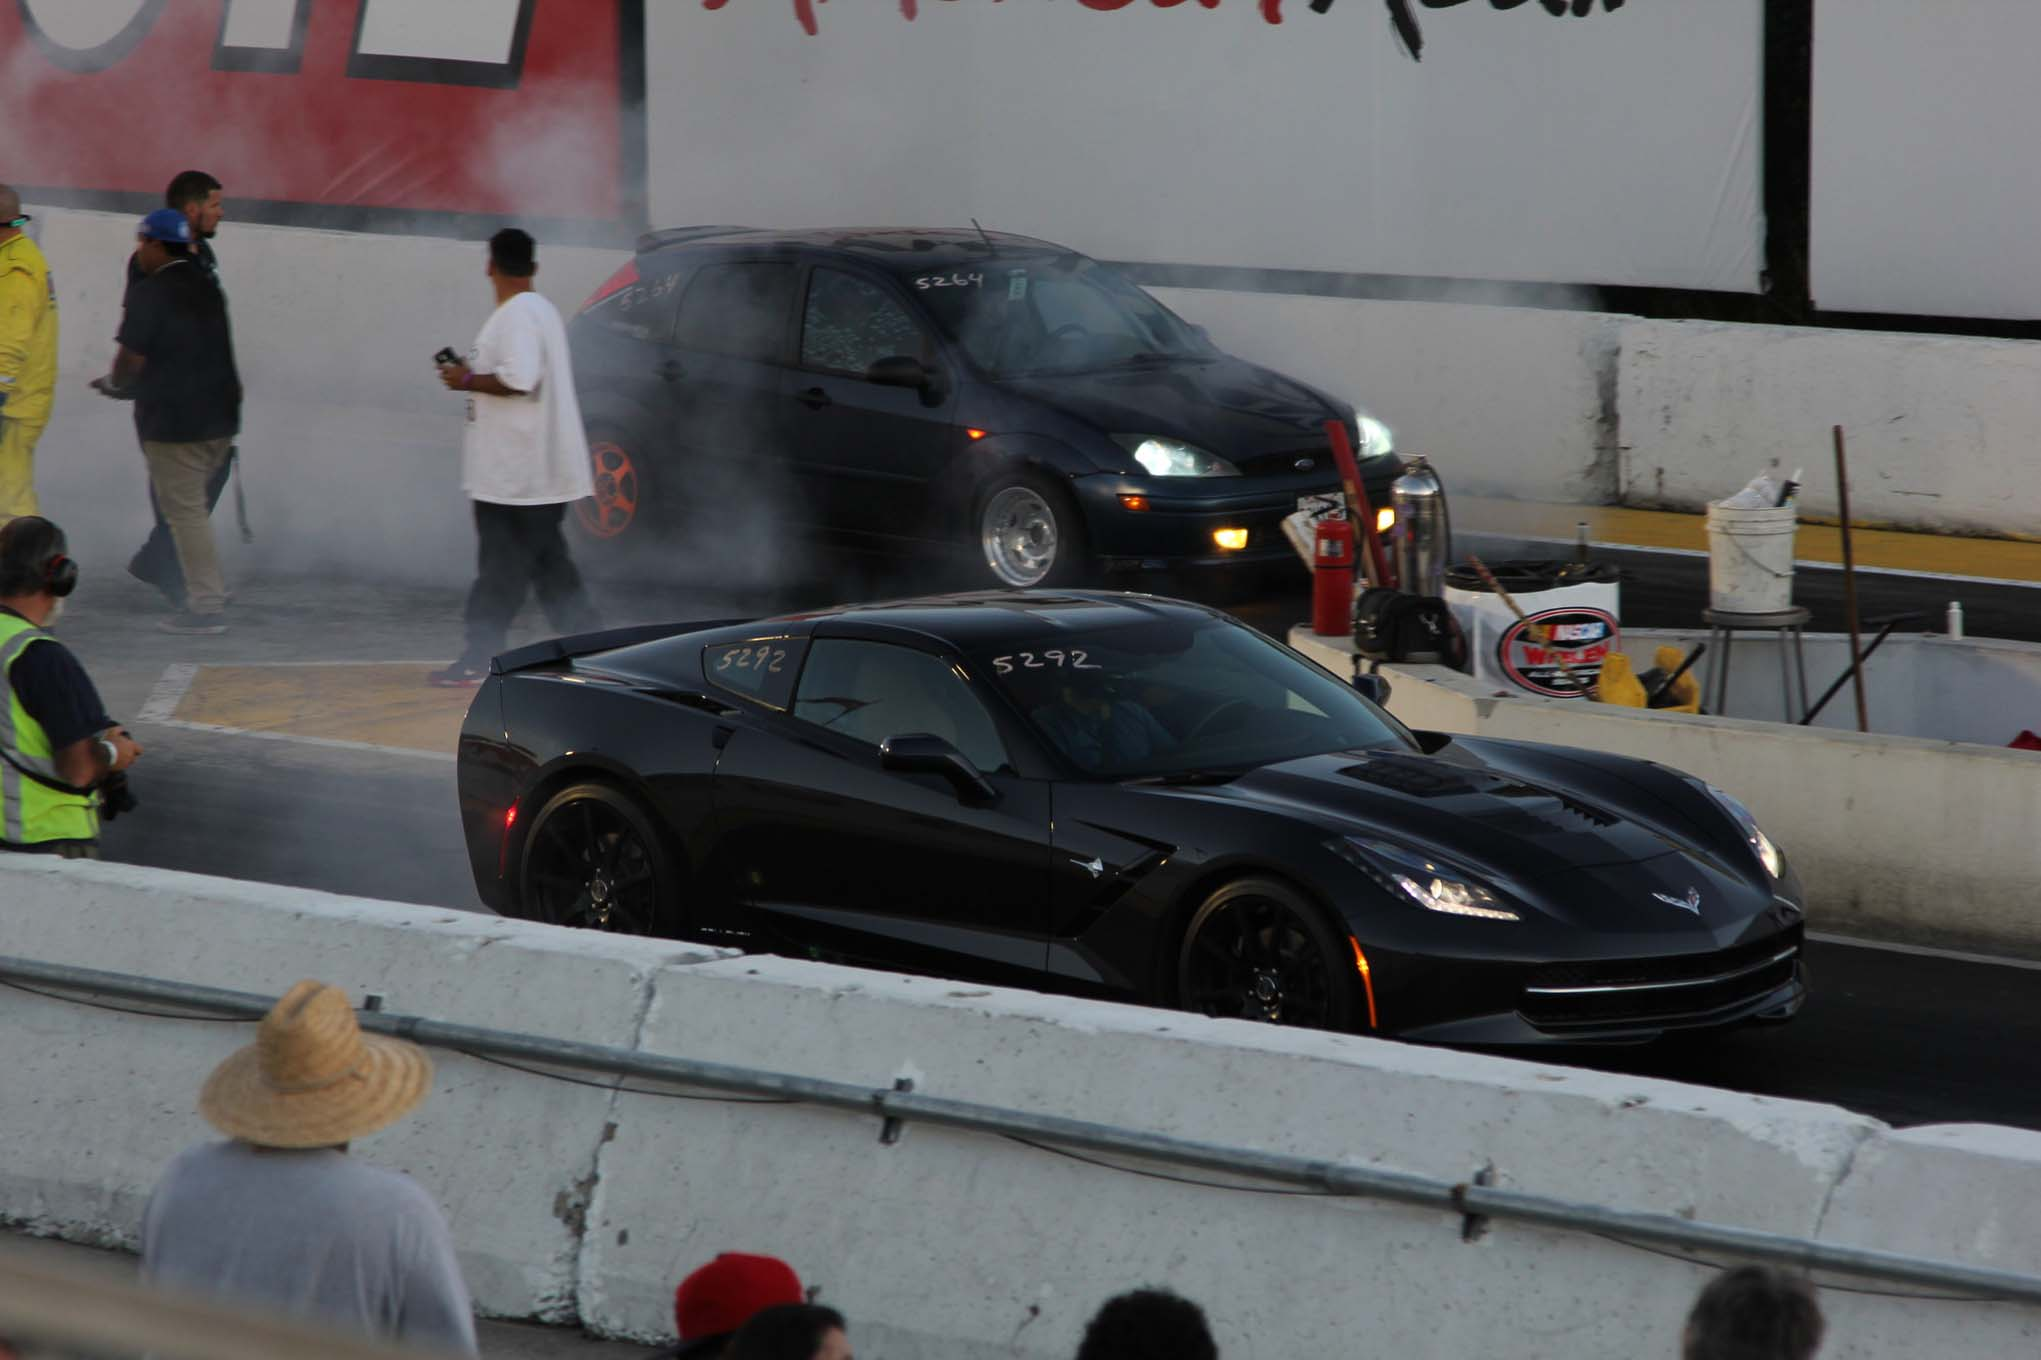 The Callaway was easy-going on the dragstrip, running the eighth-mile in 7.89 at 96.43 mph  without any of the burnout-induced code-throwing that the Z06 gave us. It left a little soft for a 600hp car, but in general, the power came on a little later in the range.